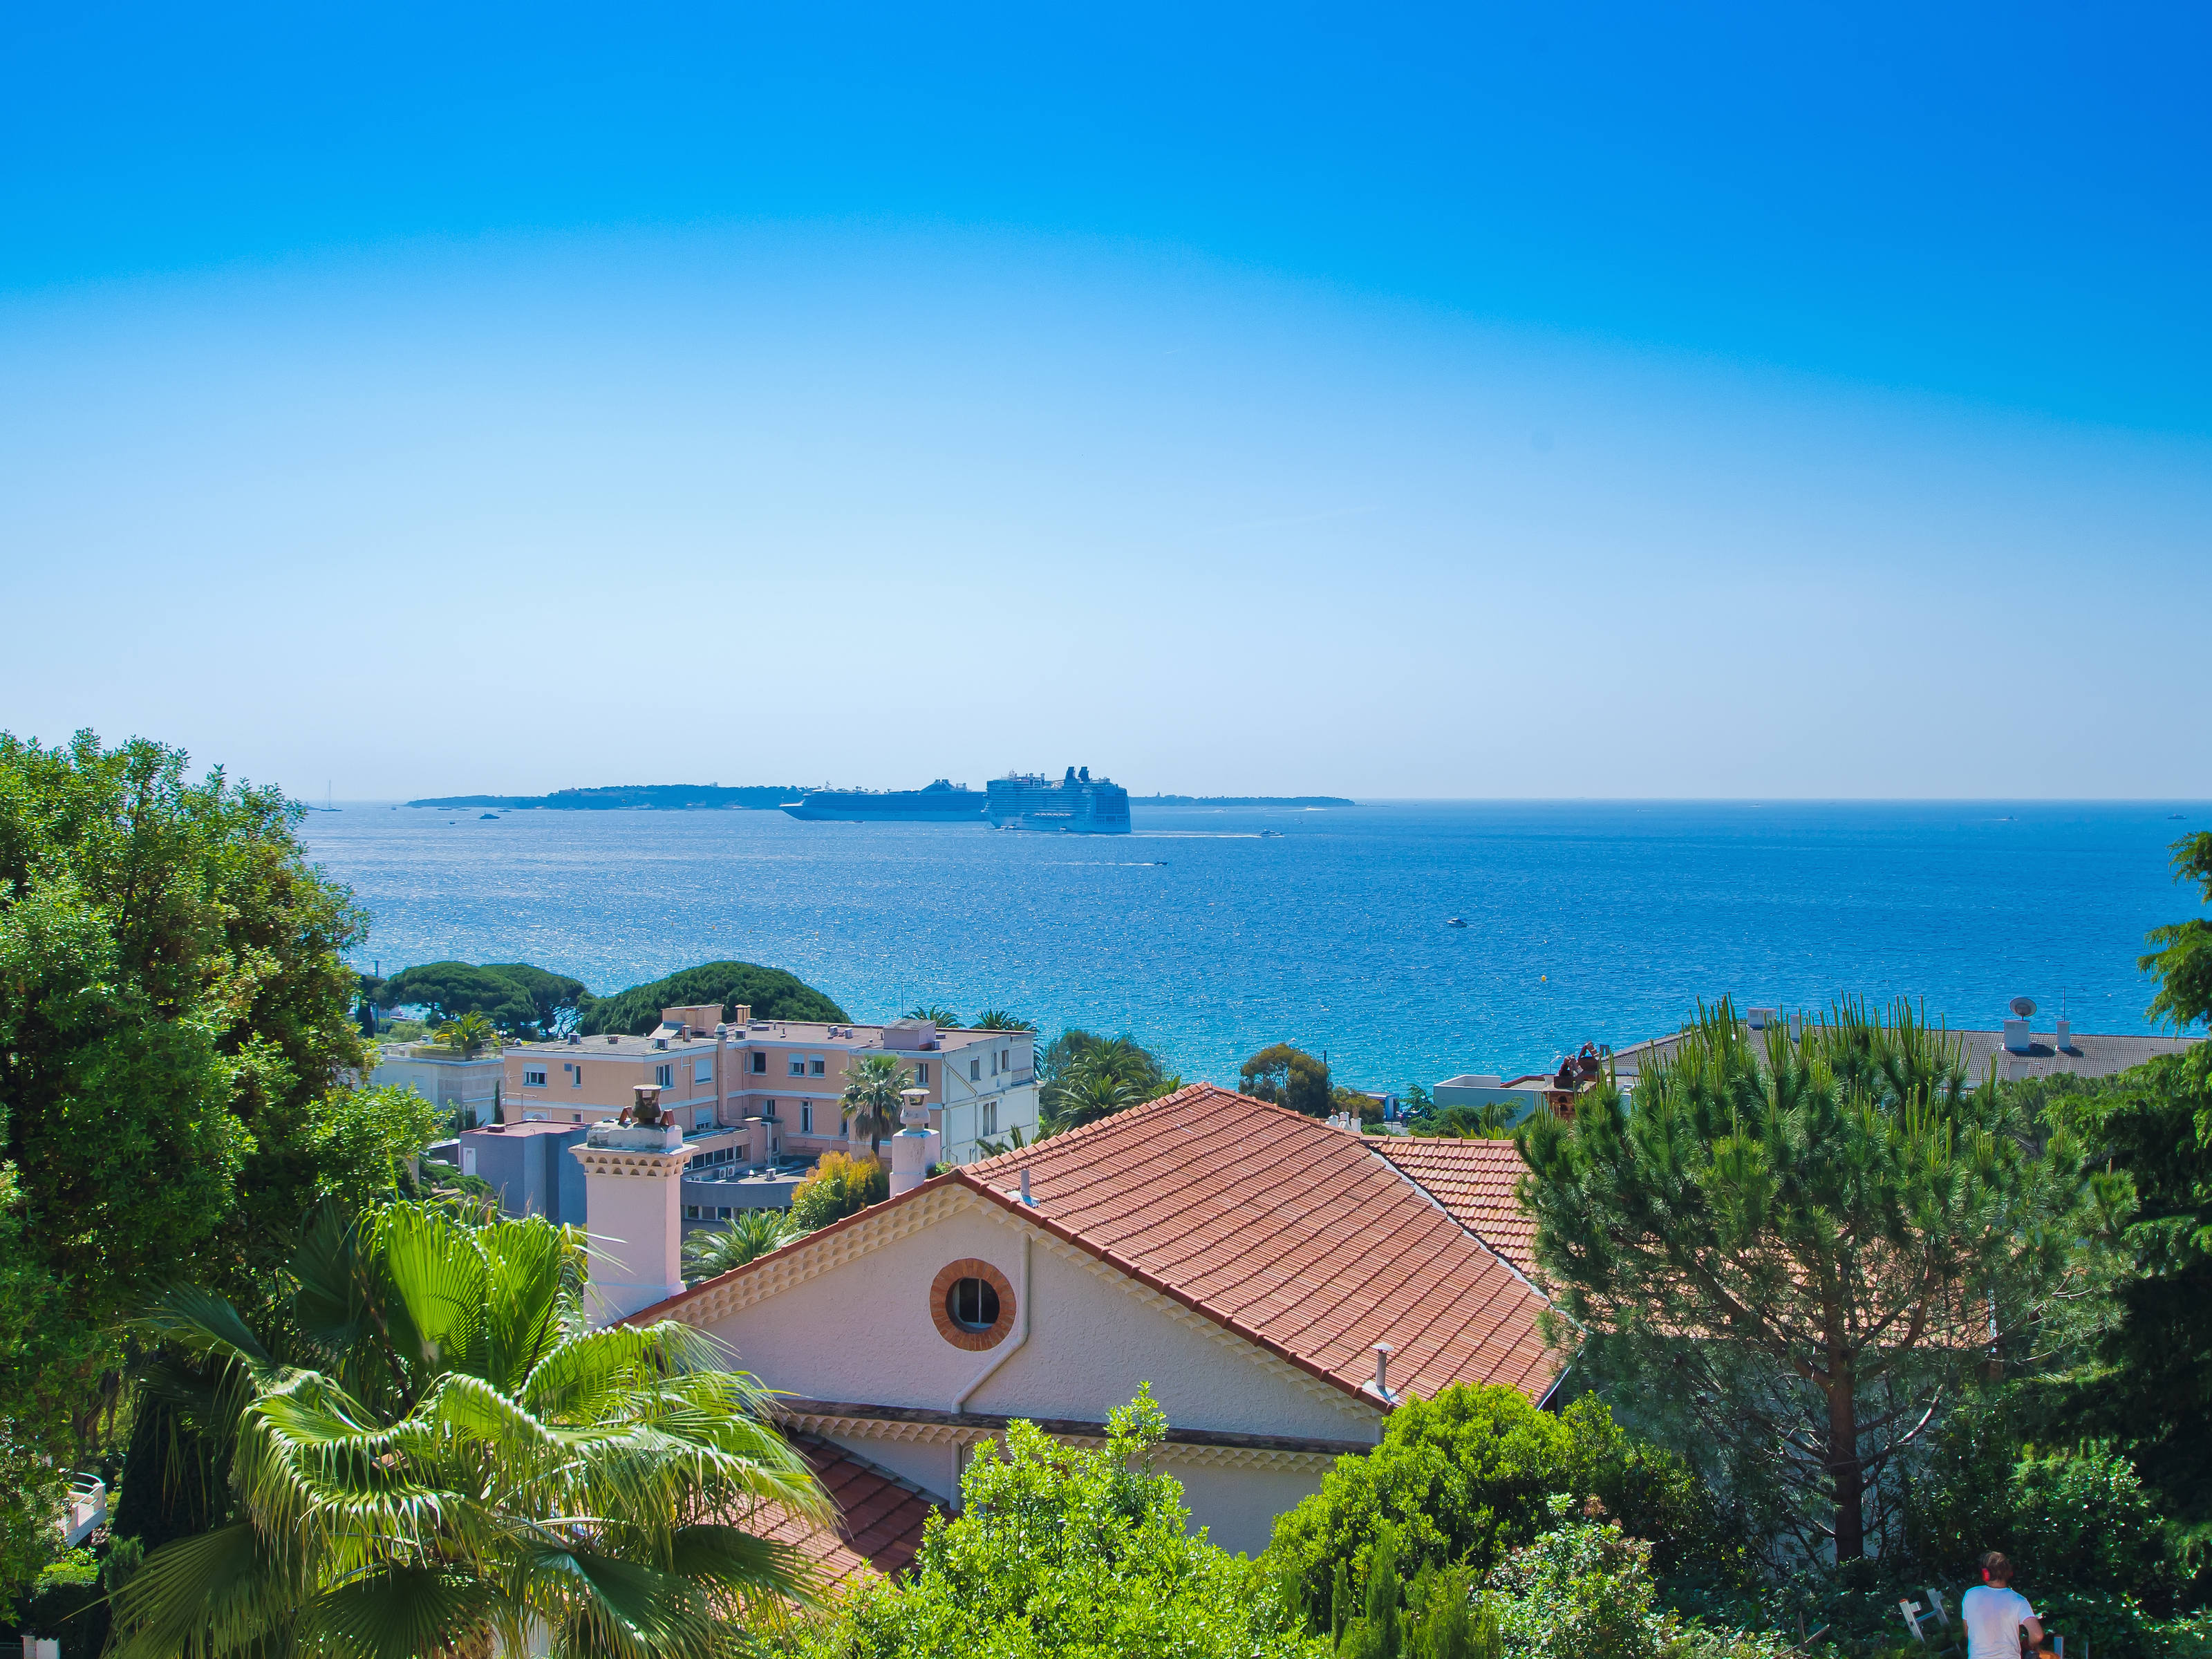 Apartment for Sale at Cannes - Beautifull 4 bedrooms apartment for sale, panoramic sea view La Croix des Gardes Cannes, Provence-Alpes-Cote D'Azur 06400 France